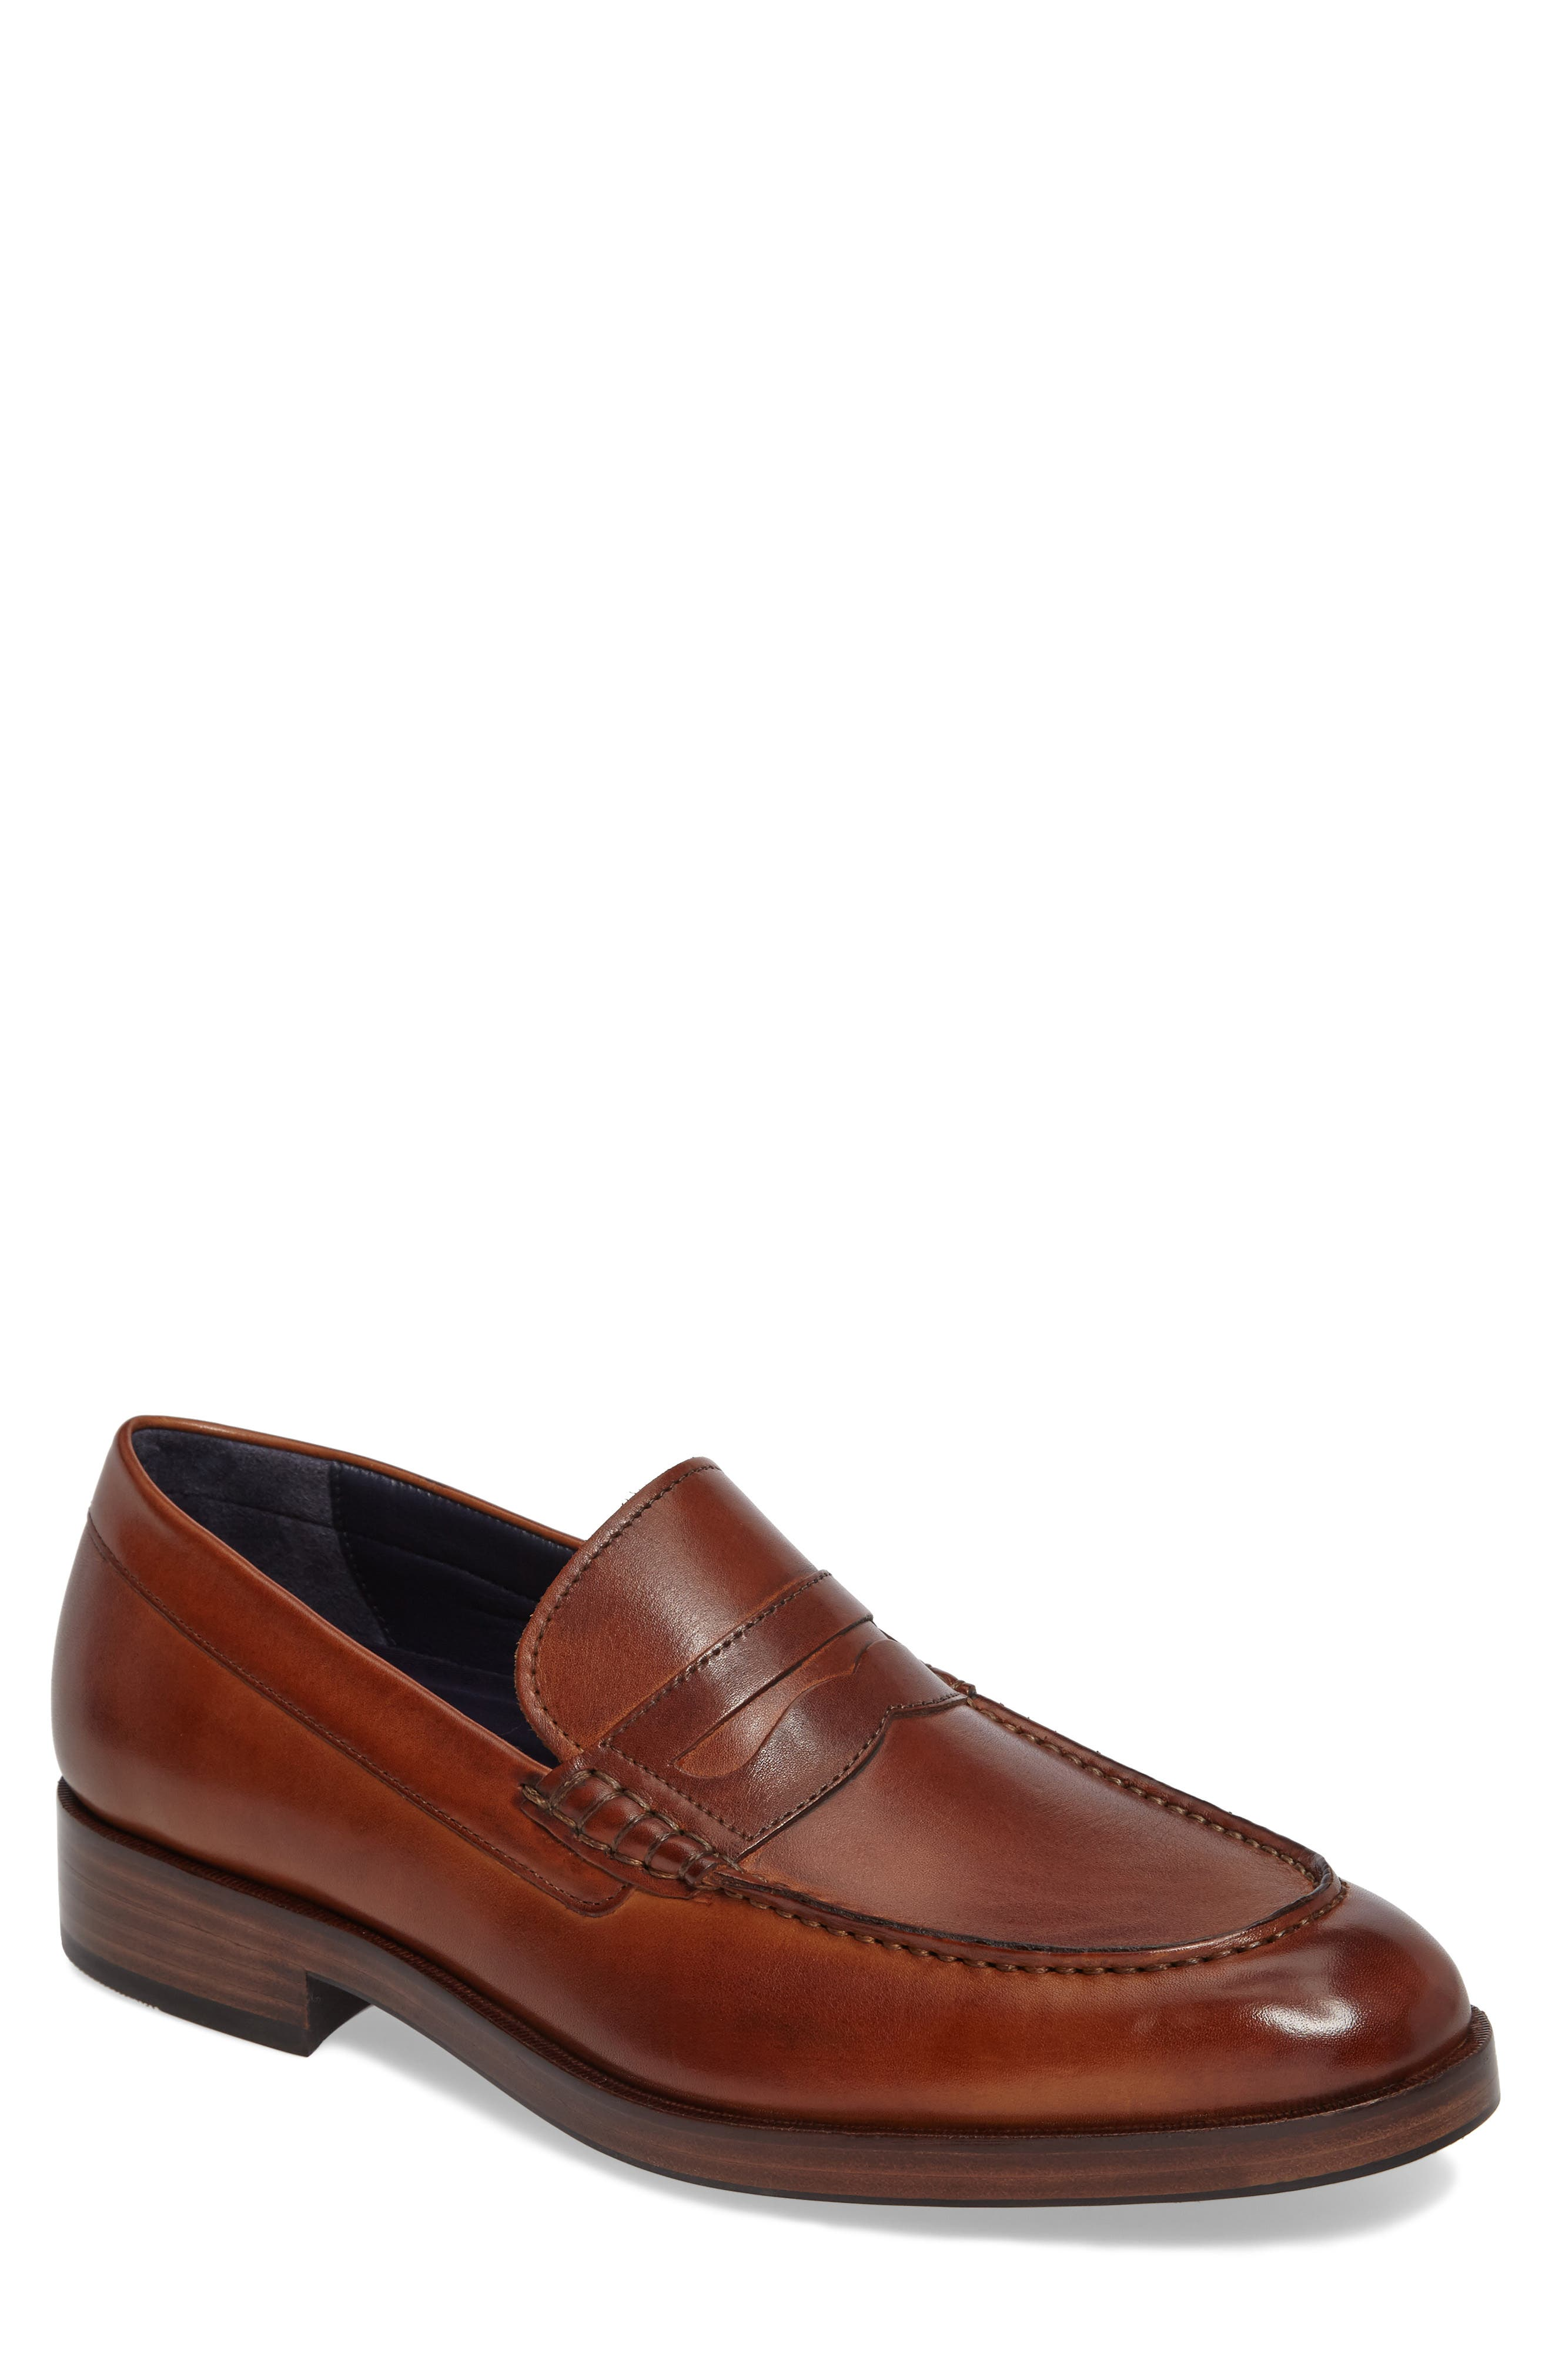 COLE HAAN, Harrison Grand Penny Loafer, Main thumbnail 1, color, COGNAC/ DARK NATURAL LEATHER